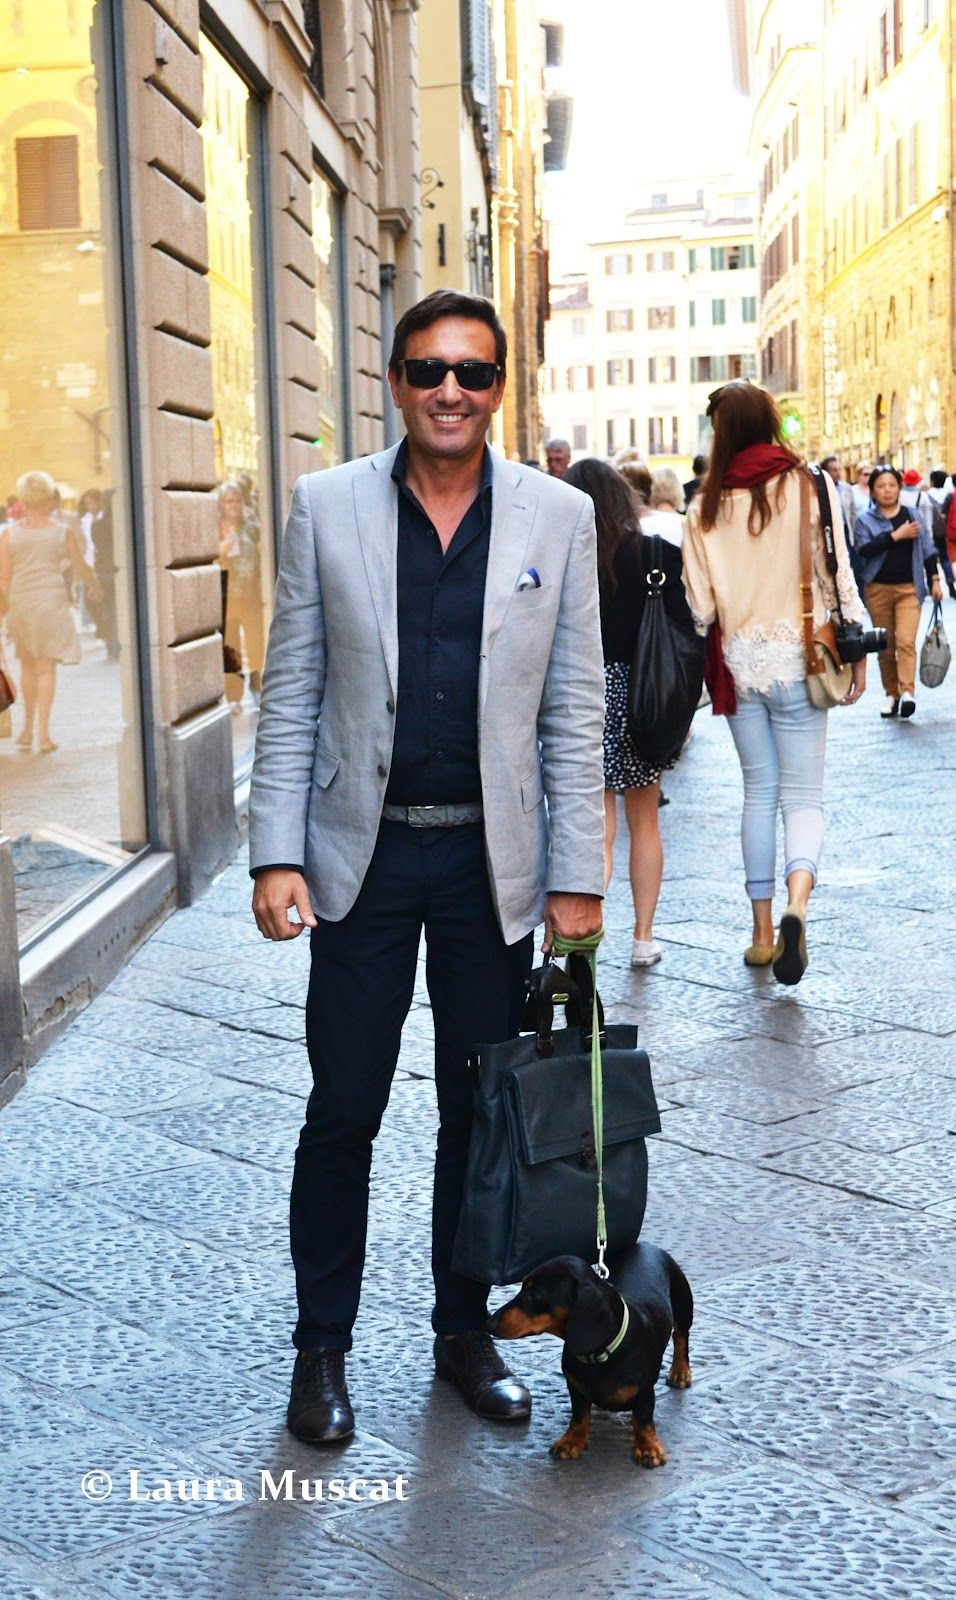 Italian Man | ... man i saw on that day in florence with ...